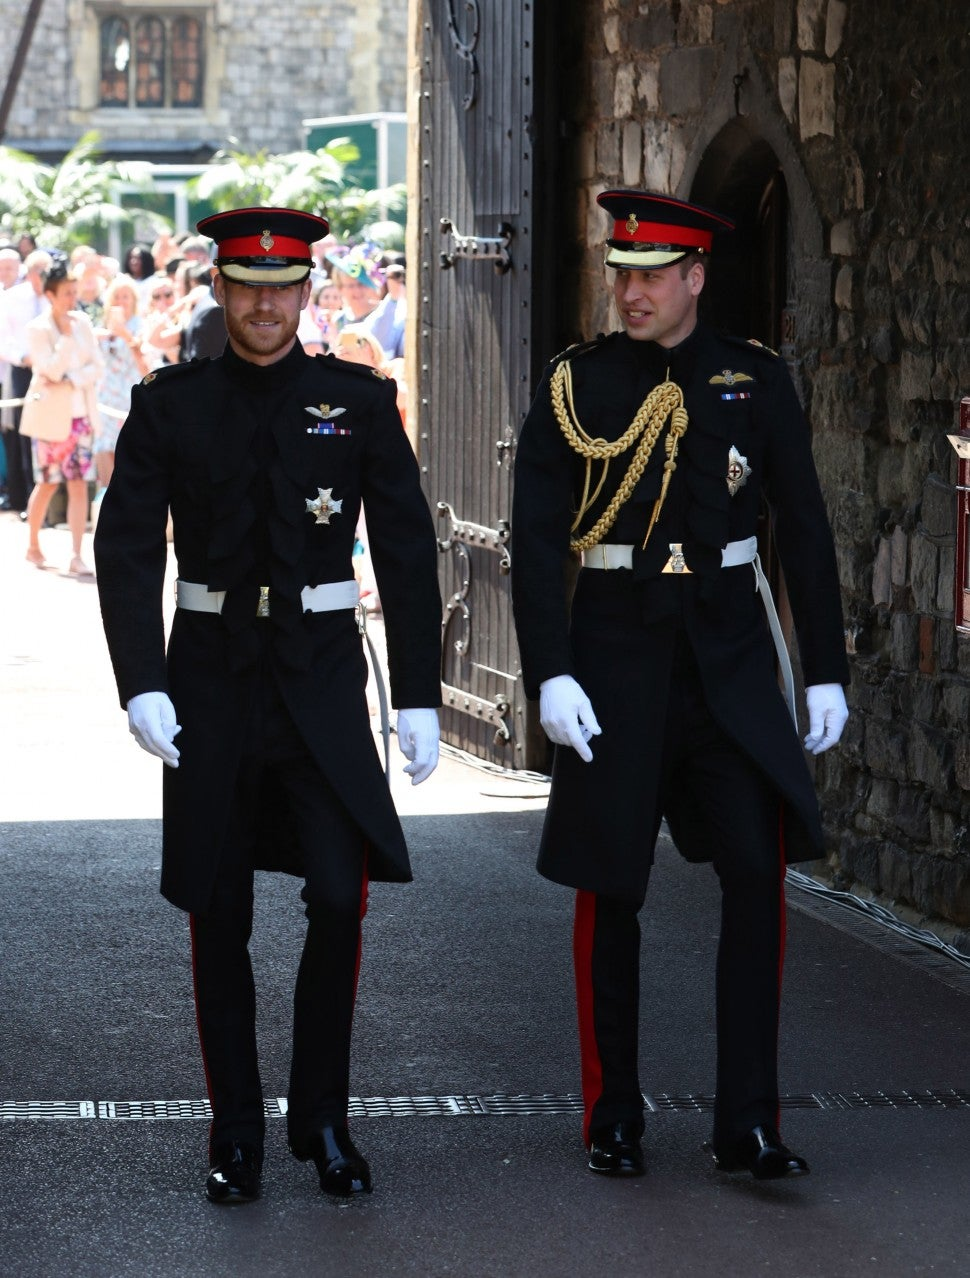 Prince Harry, Duke of Sussex, arrives with his best man Prince William, Duke of Cambridge, at St George's Chapel, Windsor Castle, in Windsor, on May 19, 2018 for his wedding ceremony to marry US actress Meghan Markle.